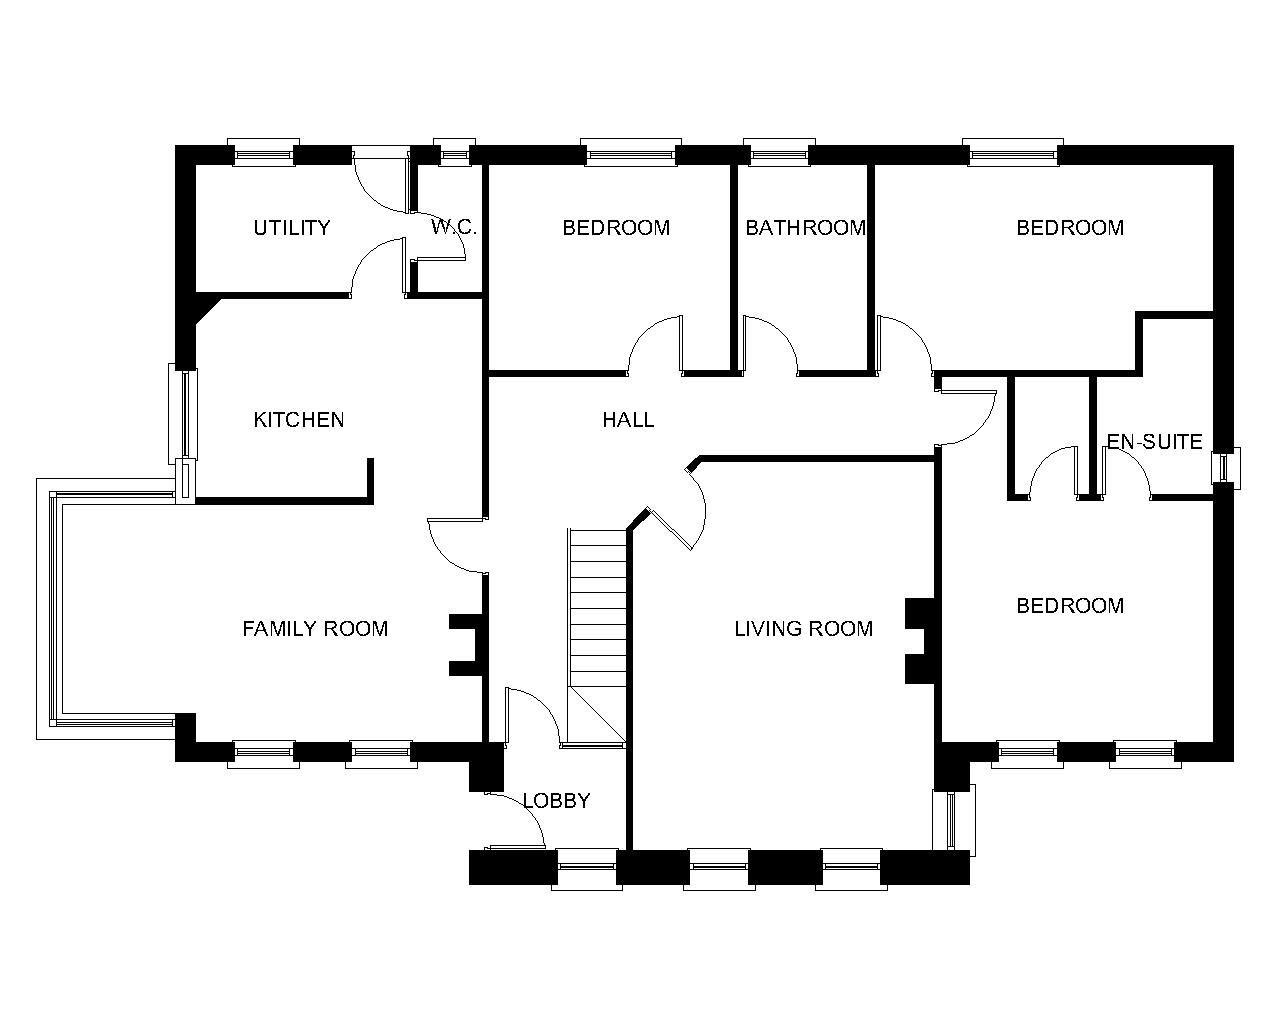 House Plans Uk Bungalow ~ Home Design and Furniture Ideas